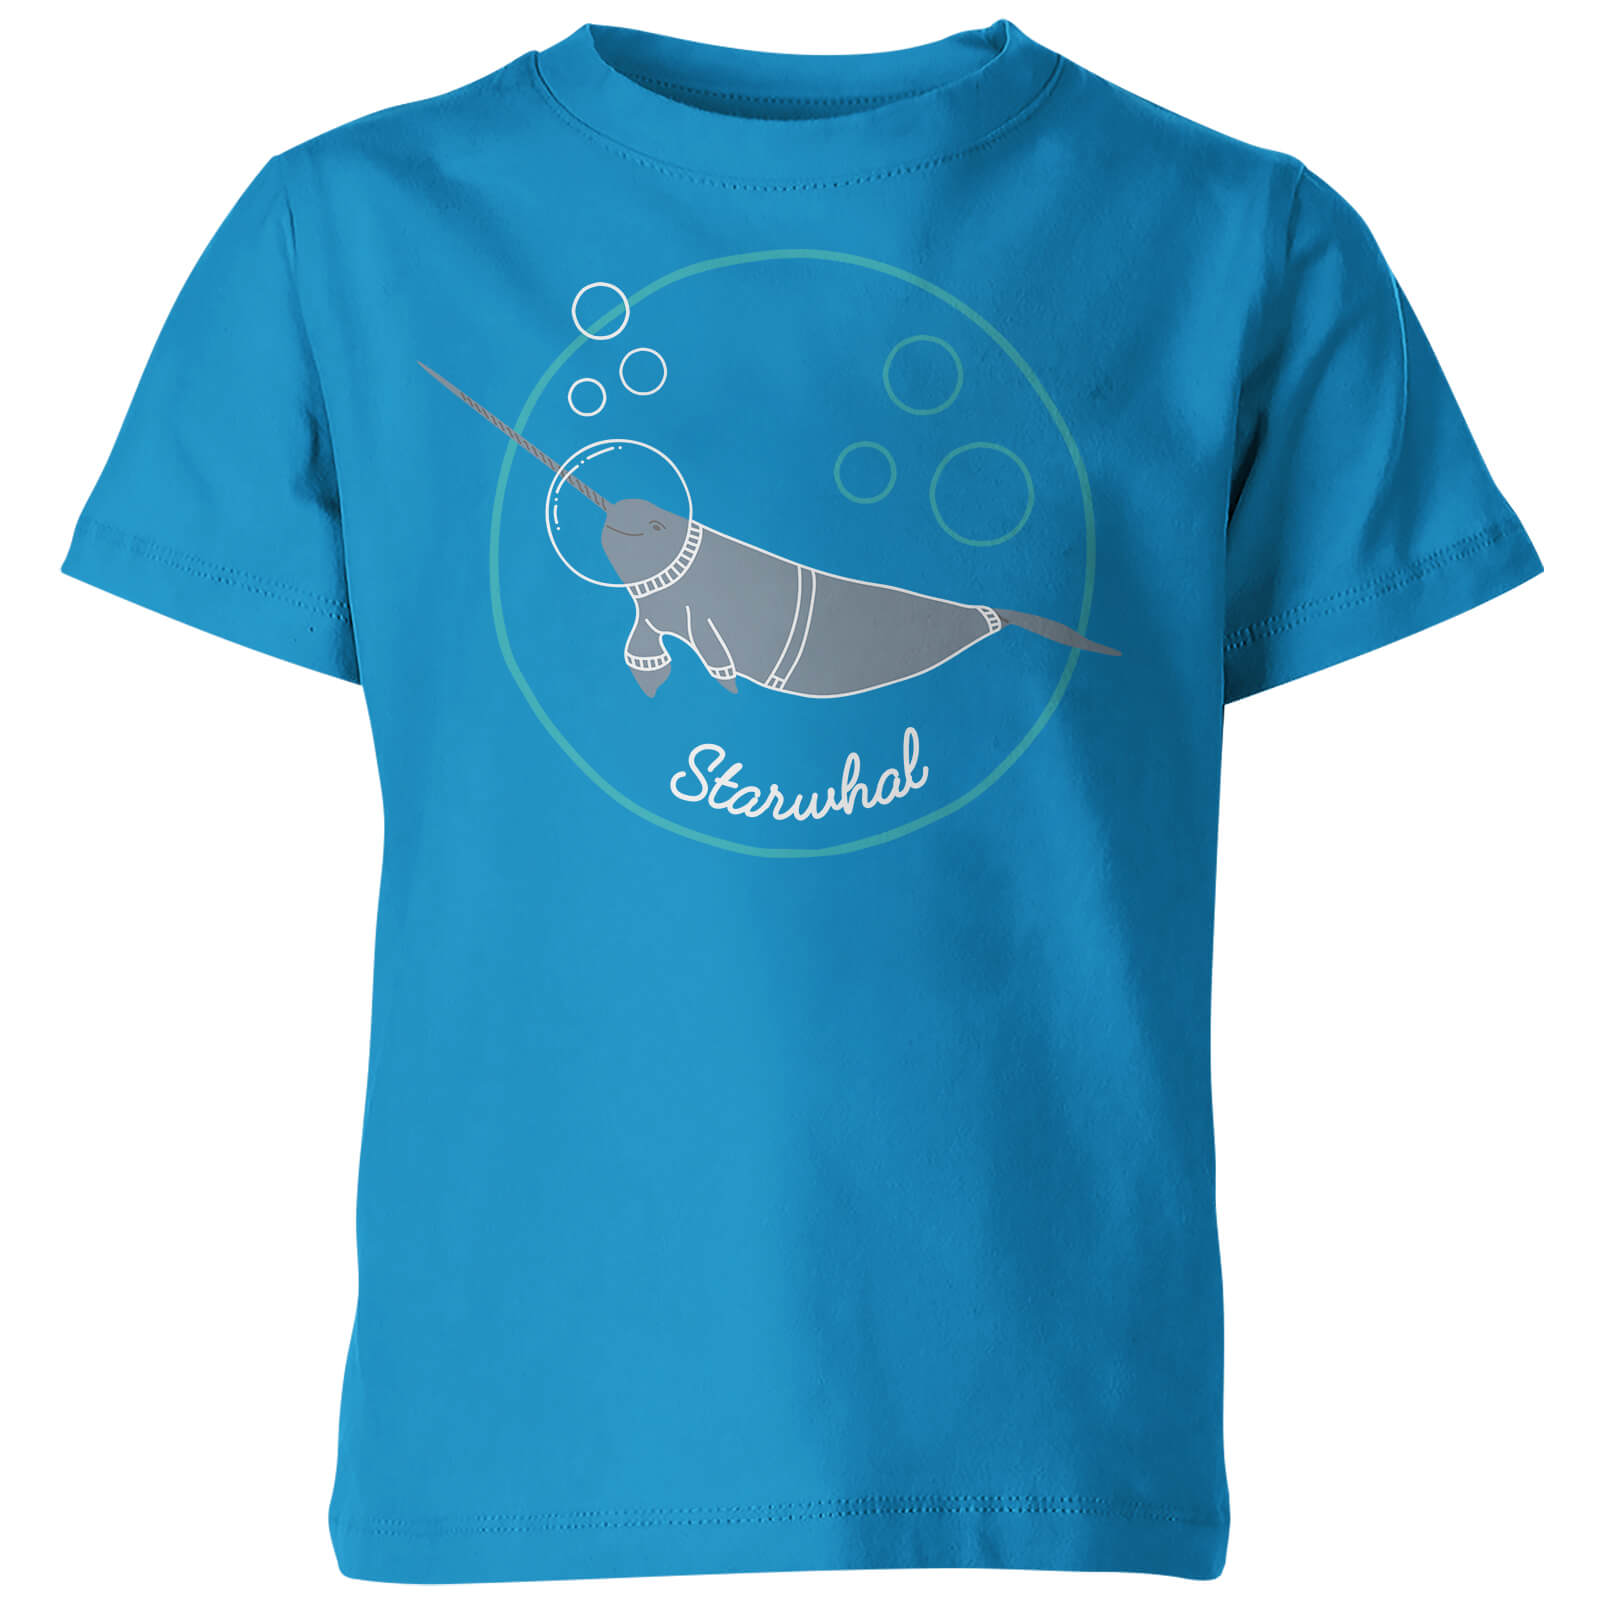 My Little Rascal Kids Starwhal Blue T-Shirt